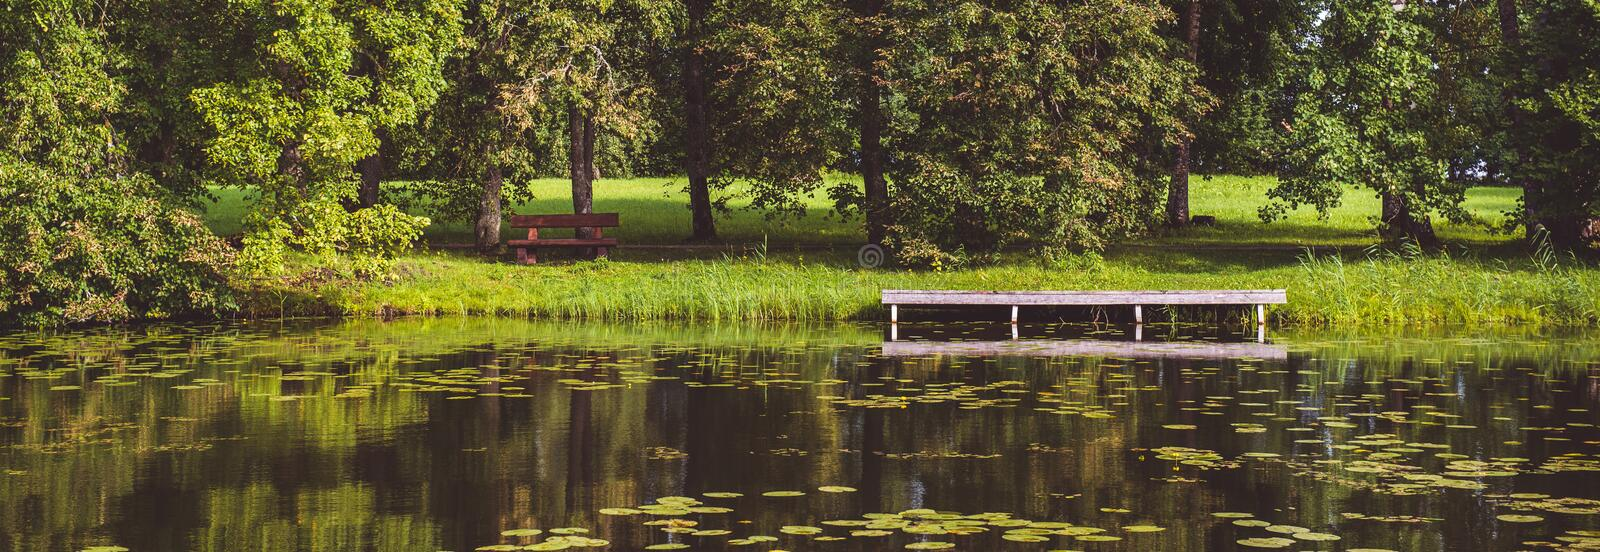 Horizontal image panoramic scenic view summer green landscape with picturesque forest lush lawn wooden pier dock for boats royalty free stock image